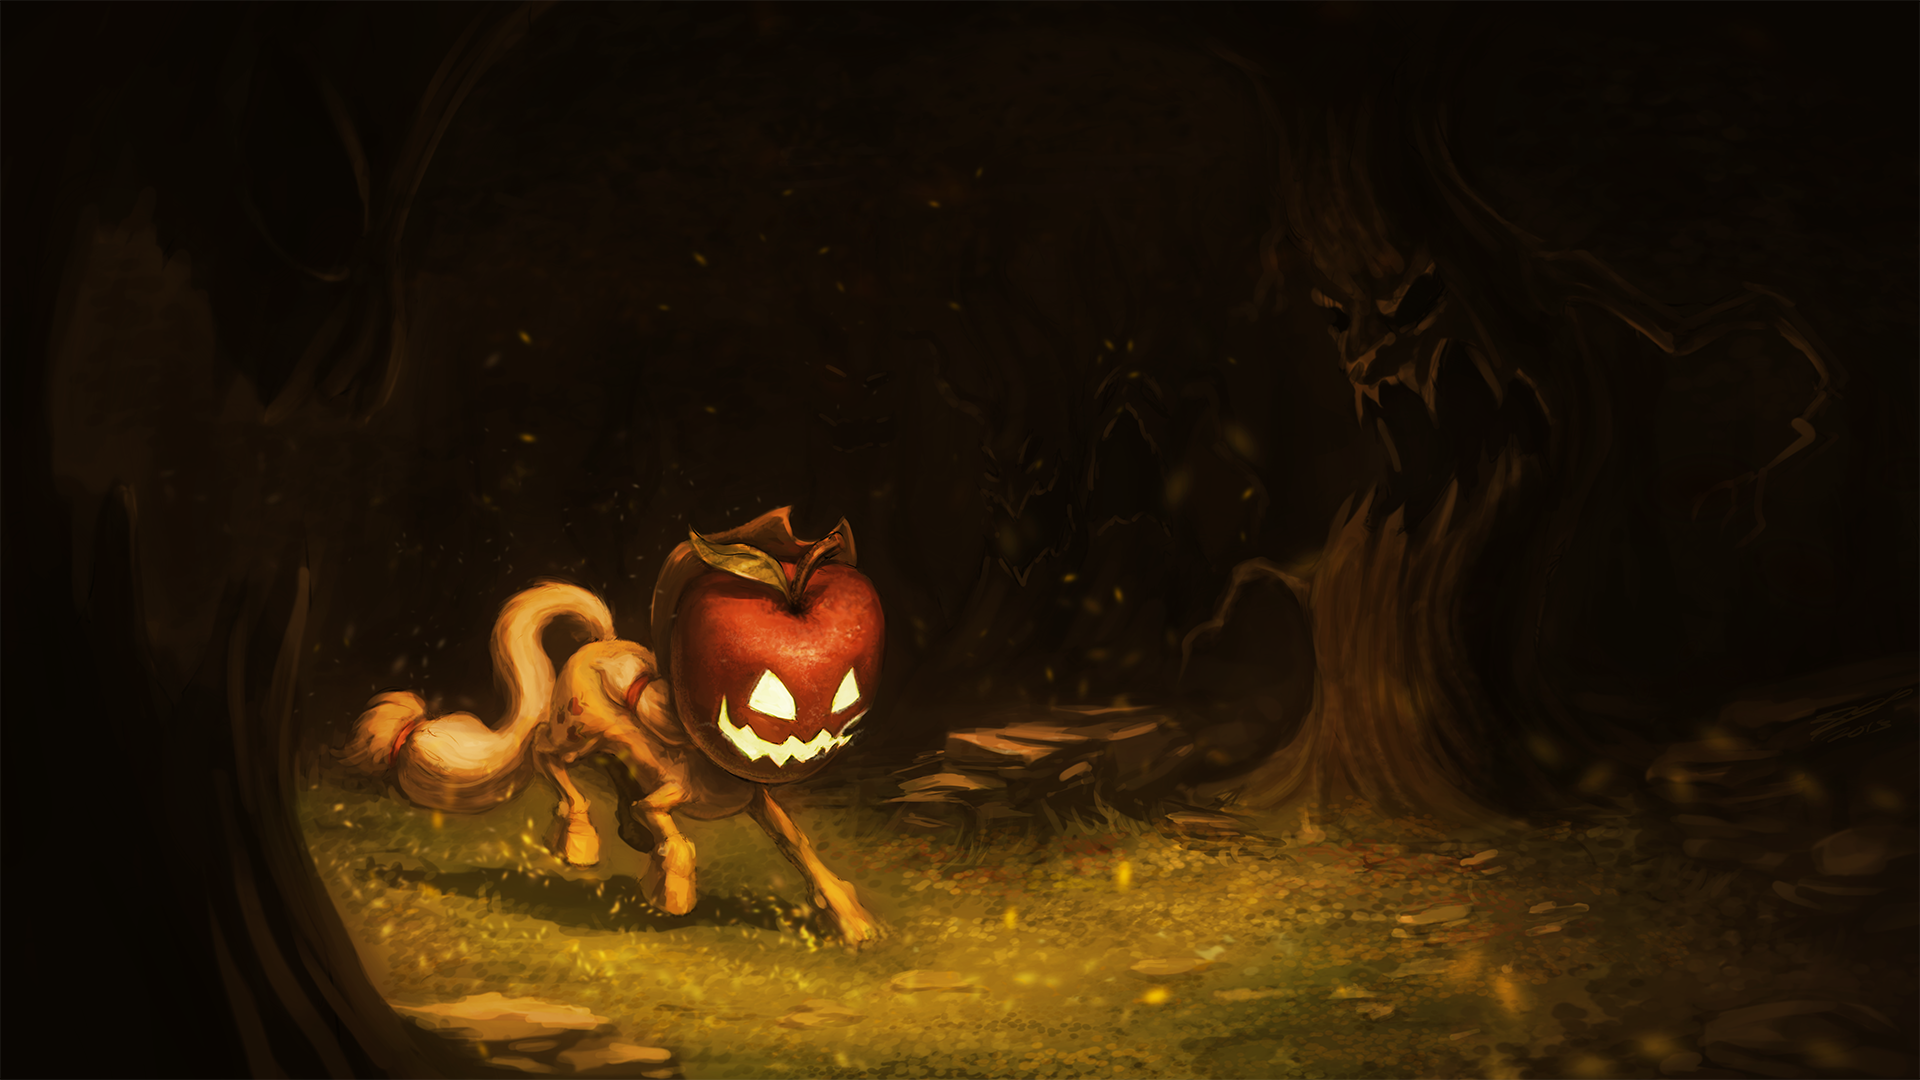 Applejack-O-Lantern by AssasinMonkey